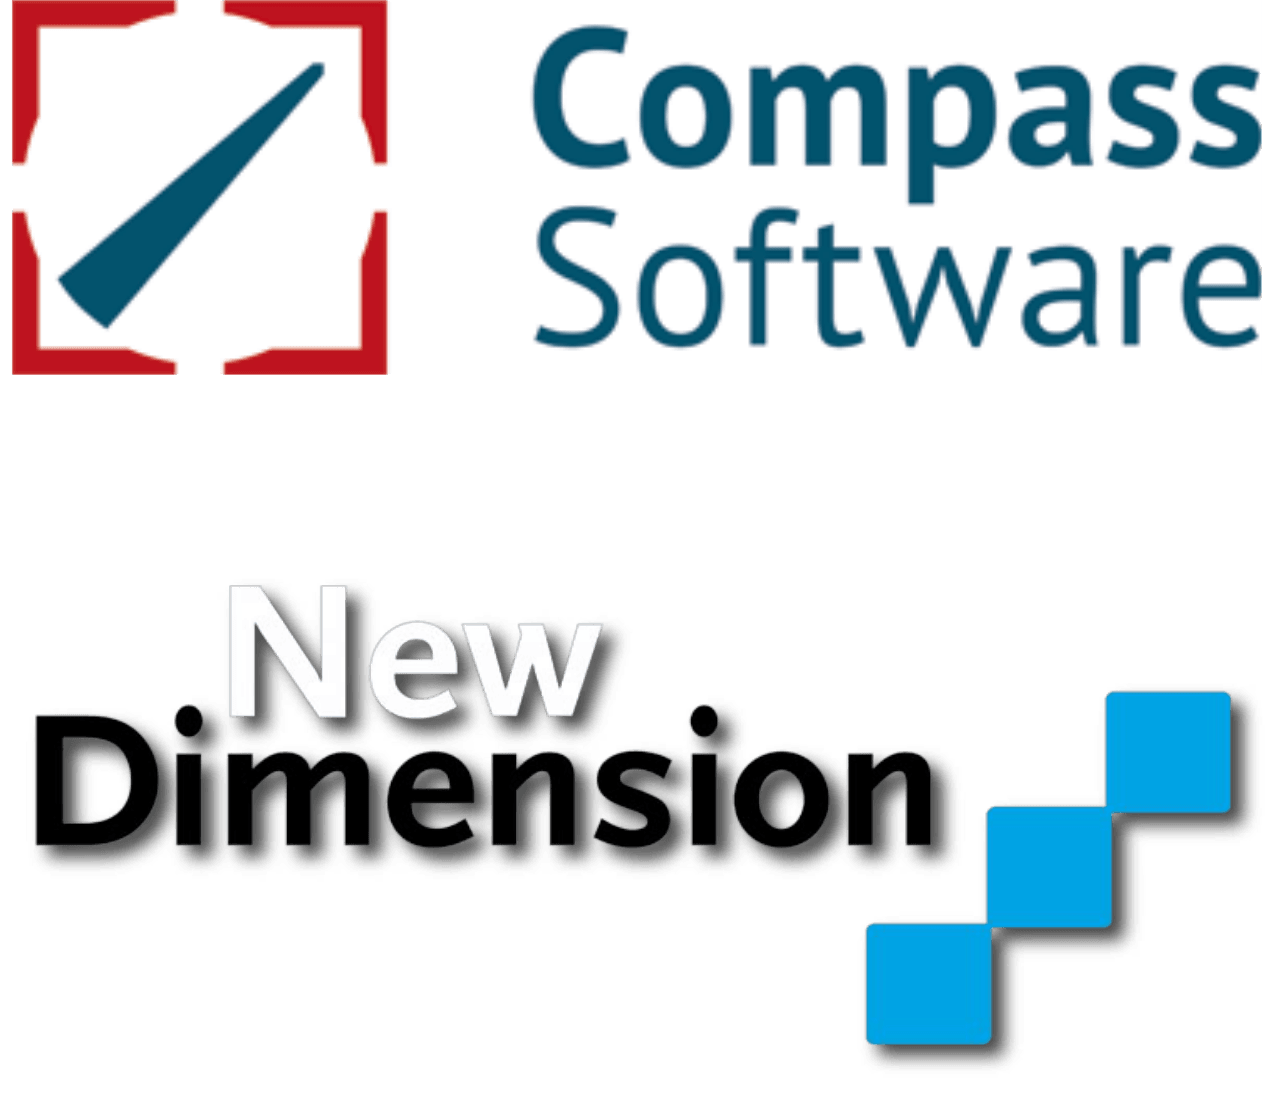 Logo-uri Compass Software si New Dimmension